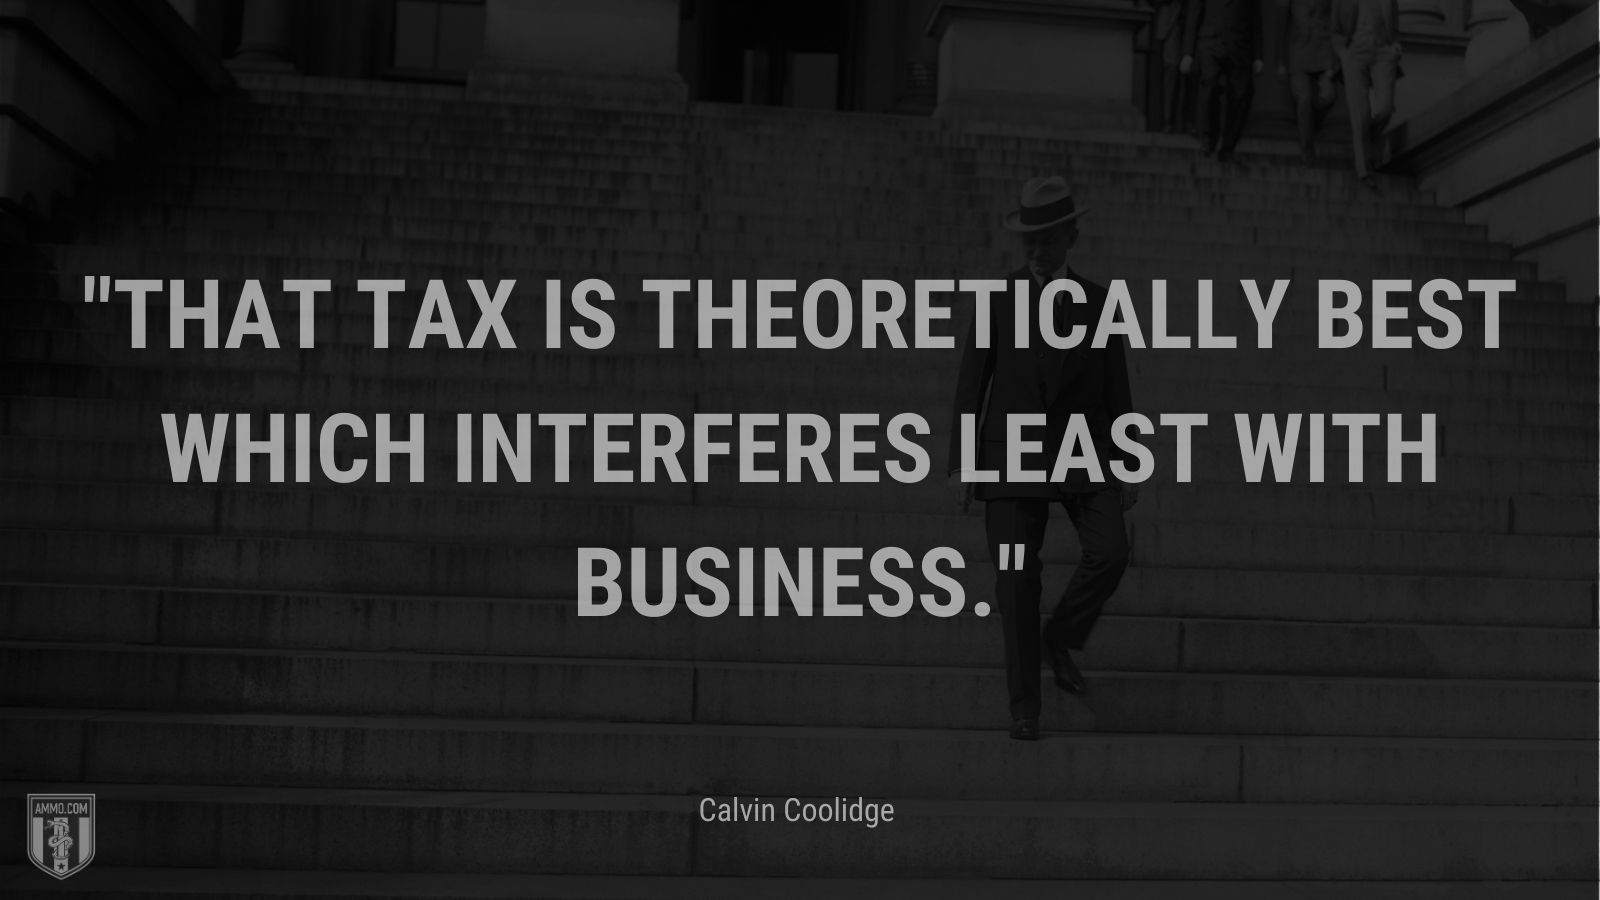 """""""That tax is theoretically best which interferes least with business."""" - Calvin Coolidge"""